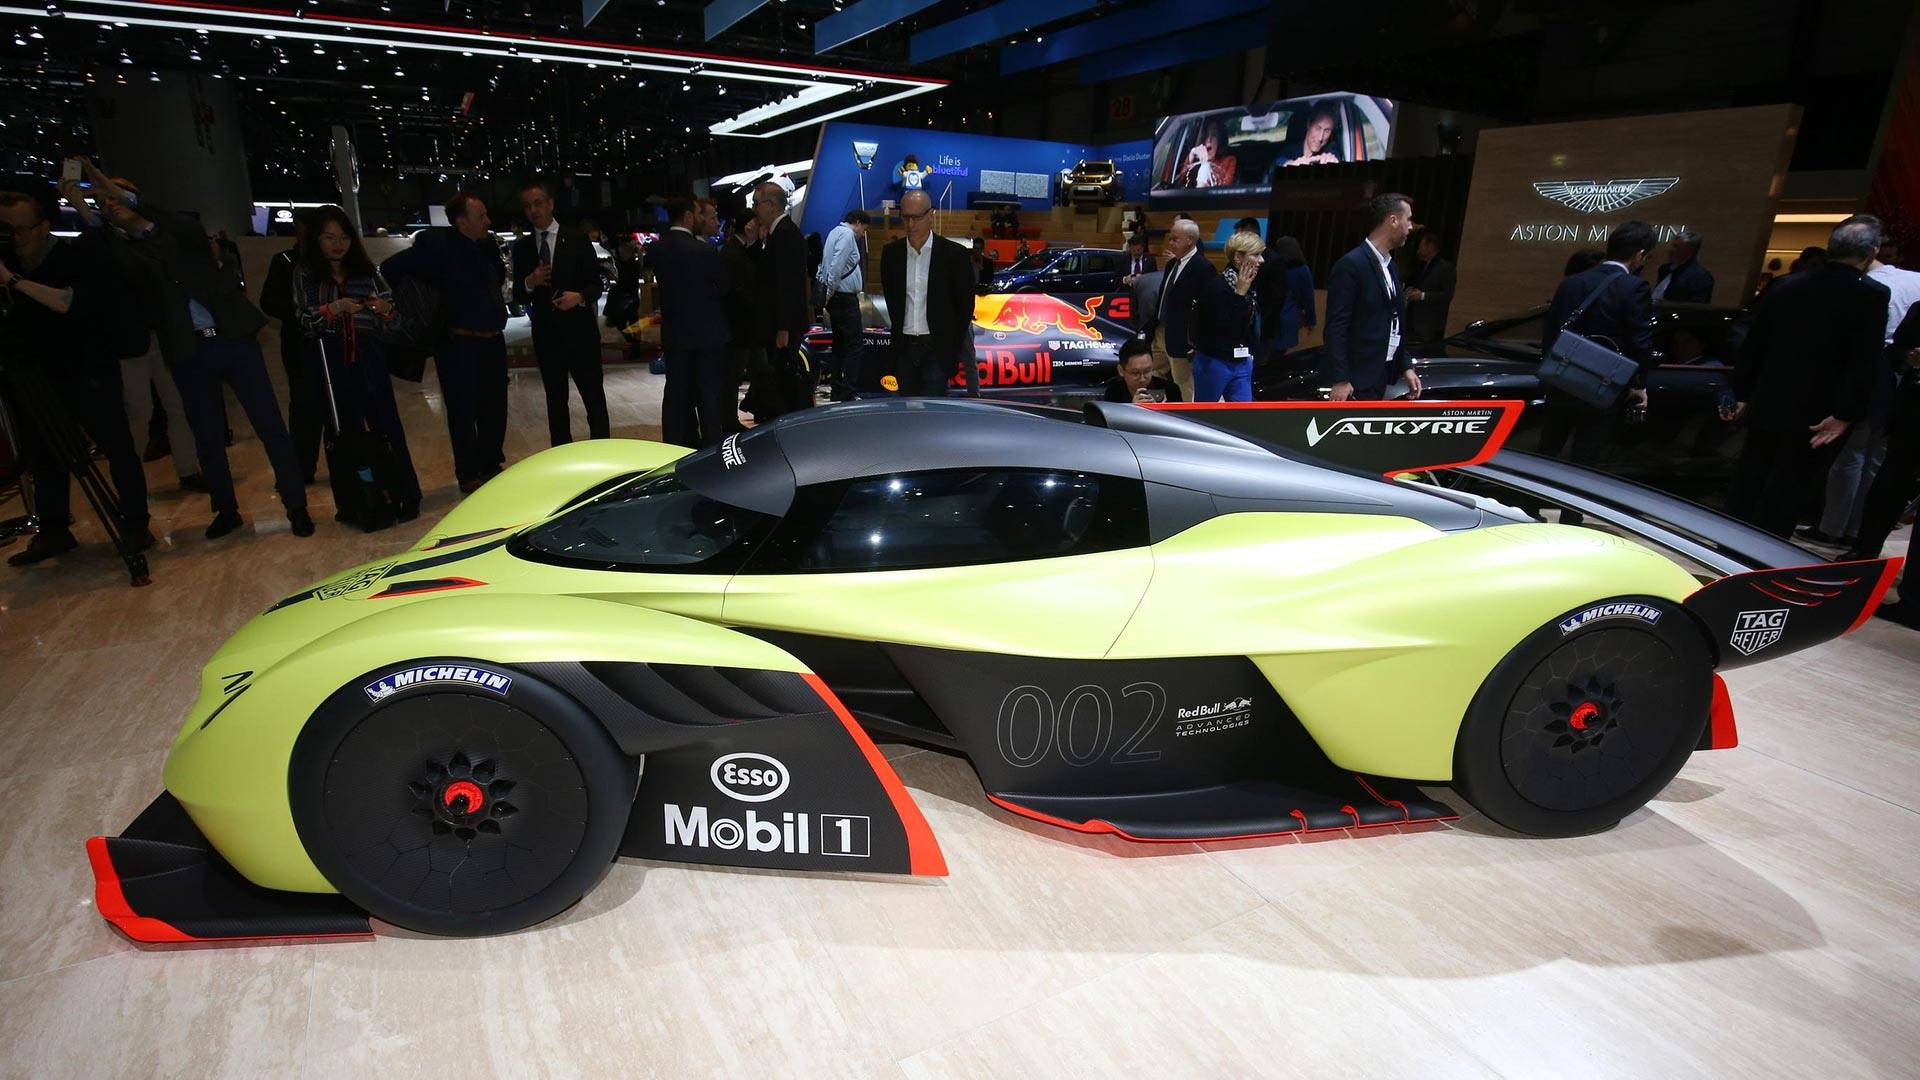 aston martin valkyrie amr pro's stats might be underestimated